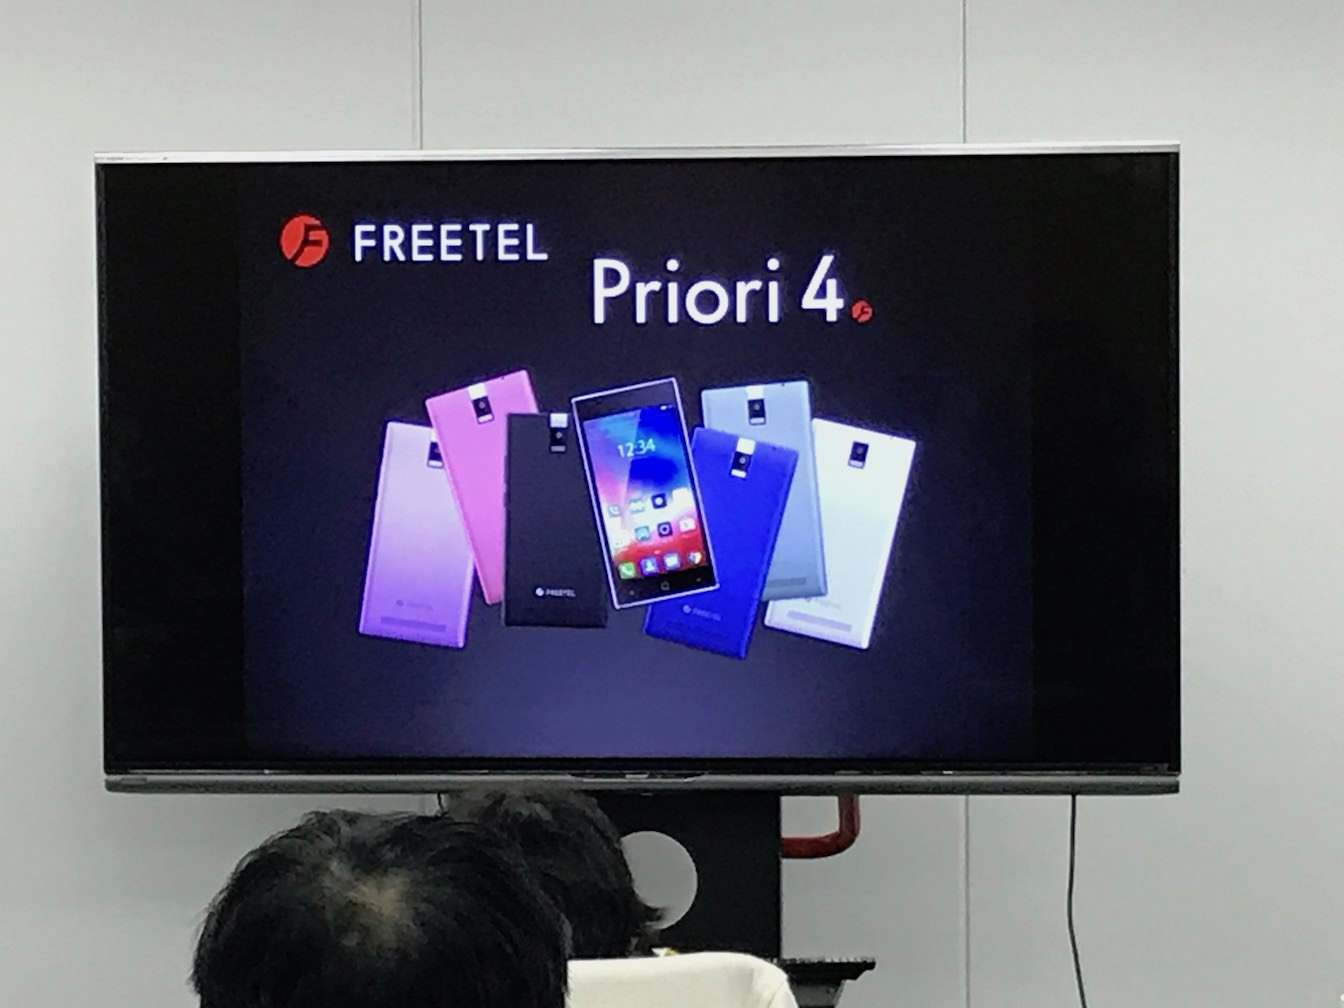 Freetel blogger event 2016 winter 12